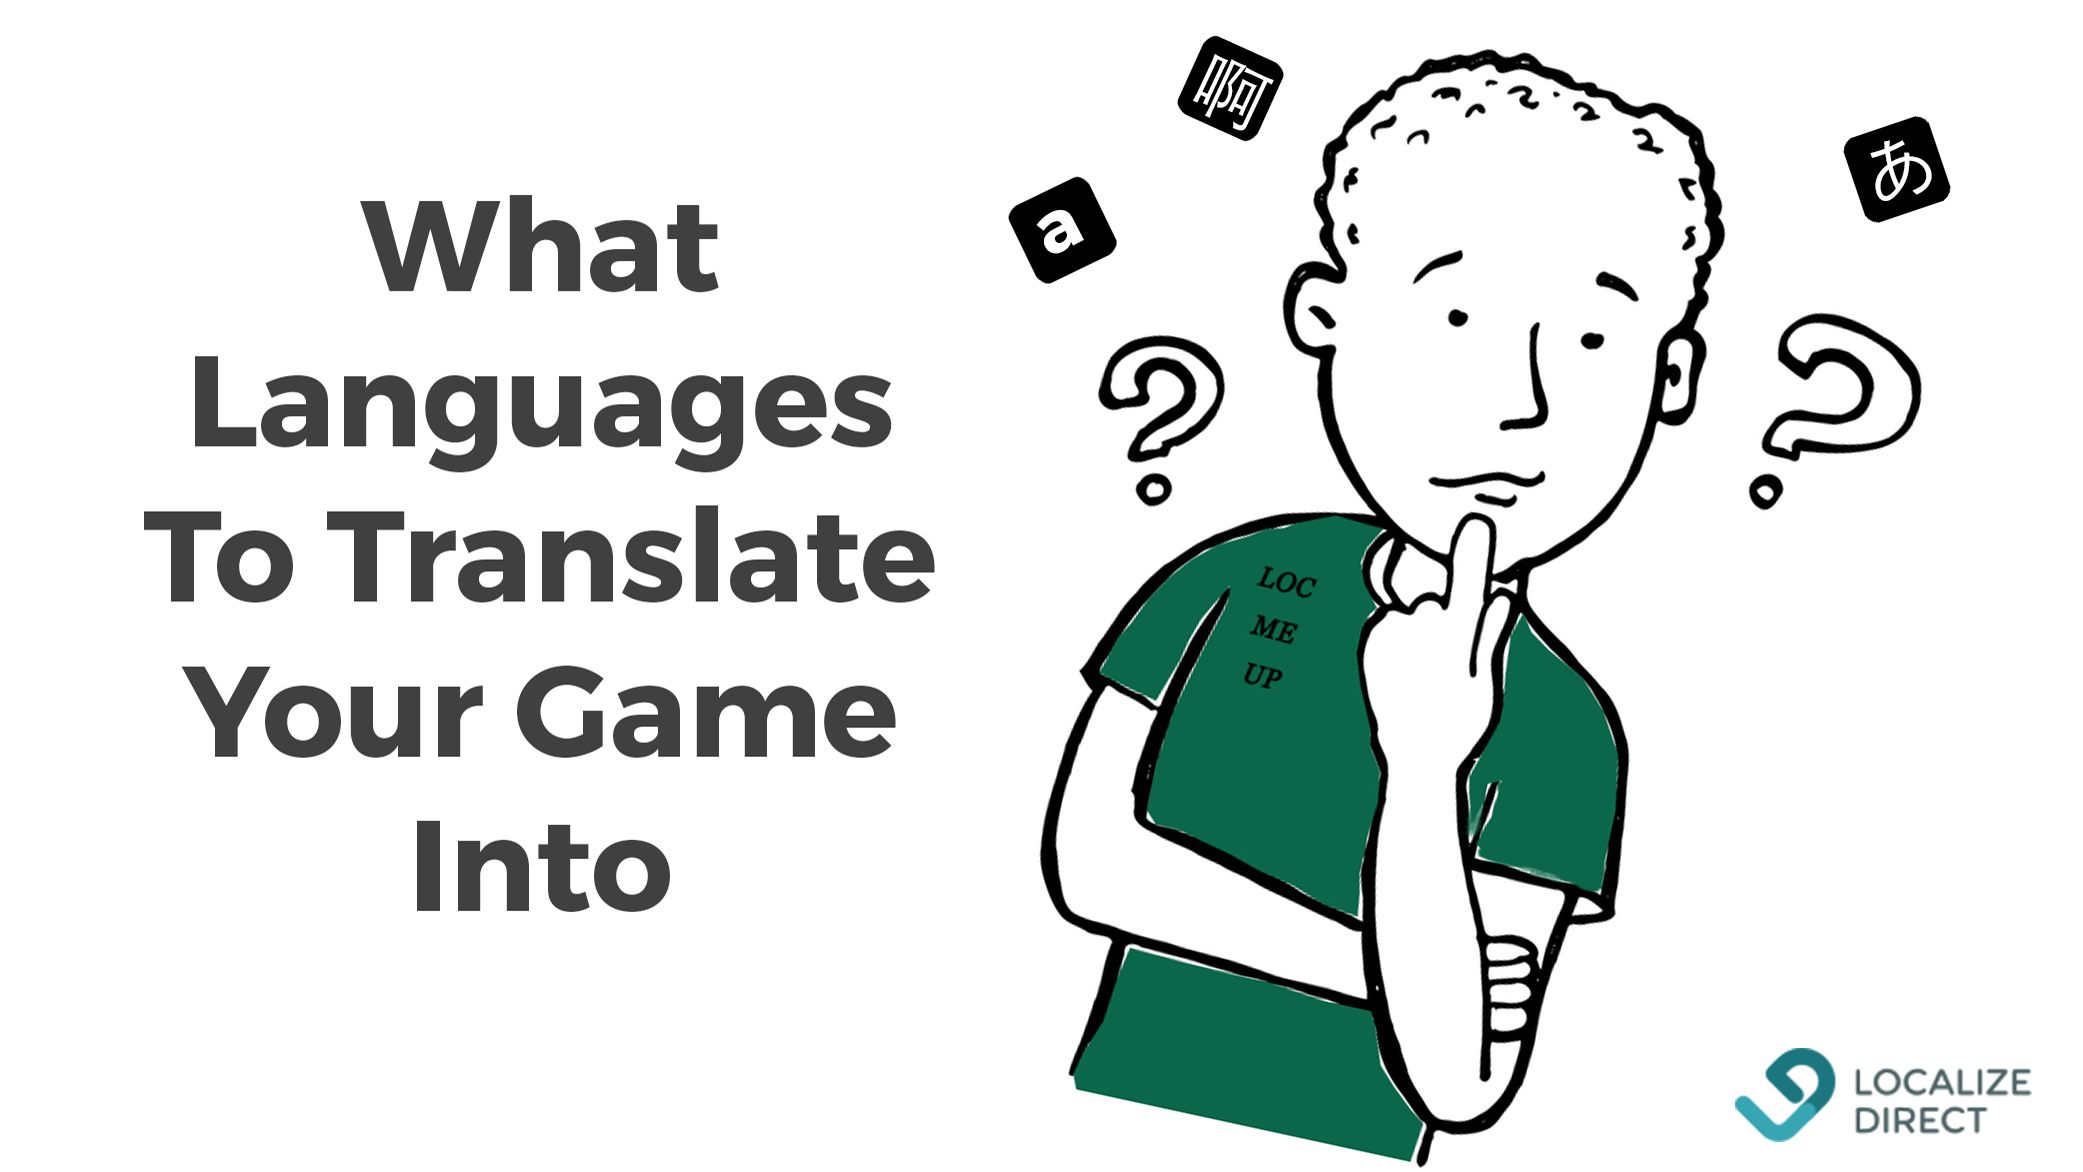 What Languages To Translate Your Game Into In 2020 (Trends & Insights)